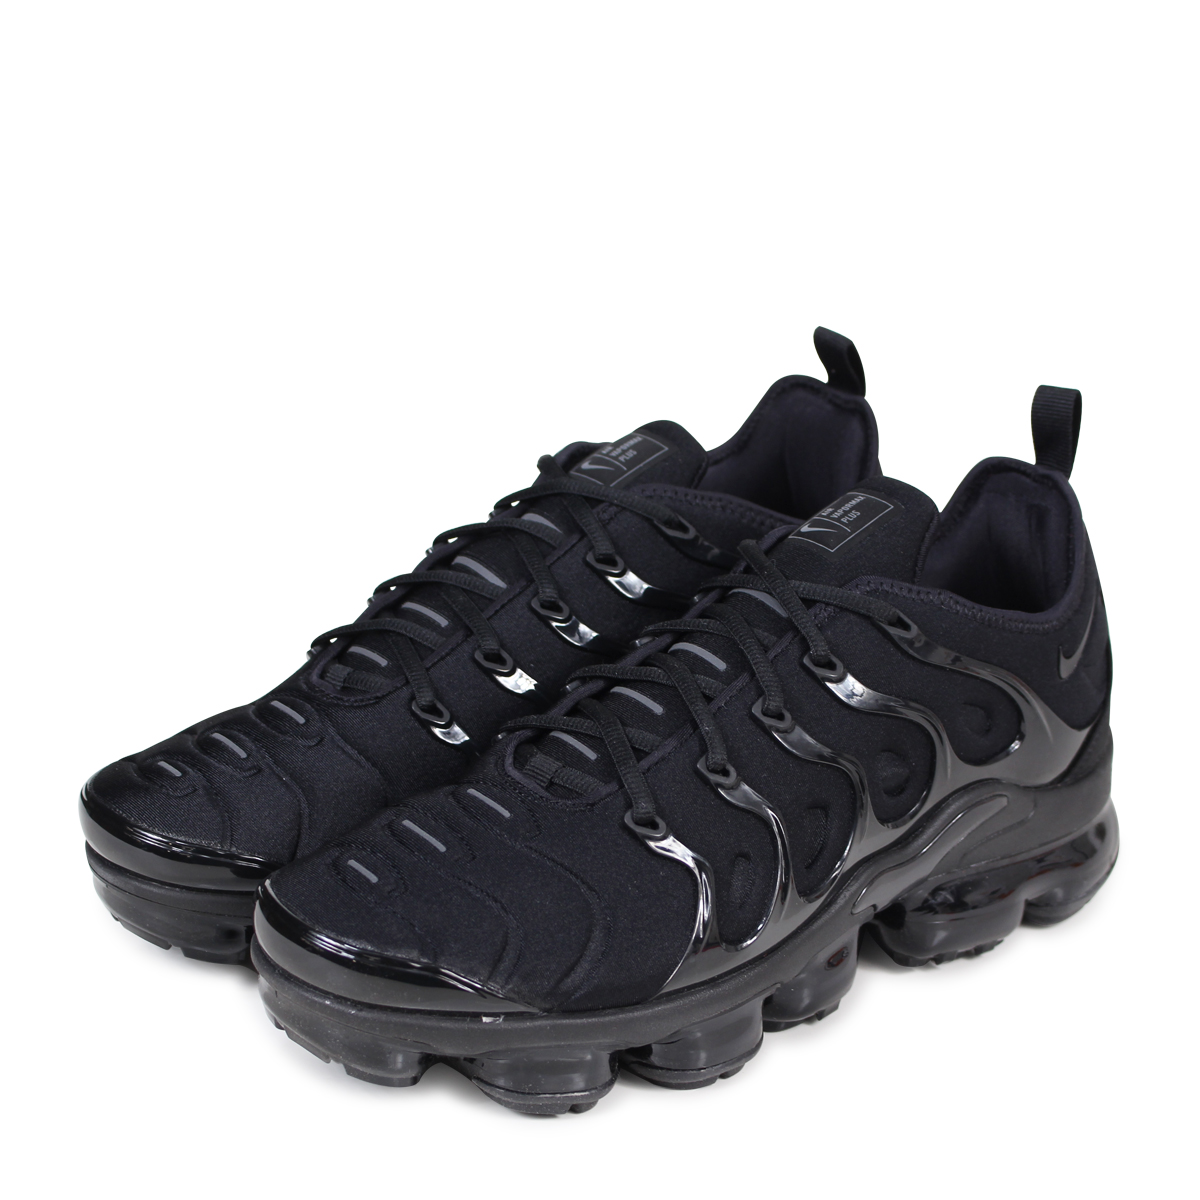 9eb545412df9e ALLSPORTS  NIKE AIR VAPORMAX PLUS Nike air vapor max plus sneakers ...